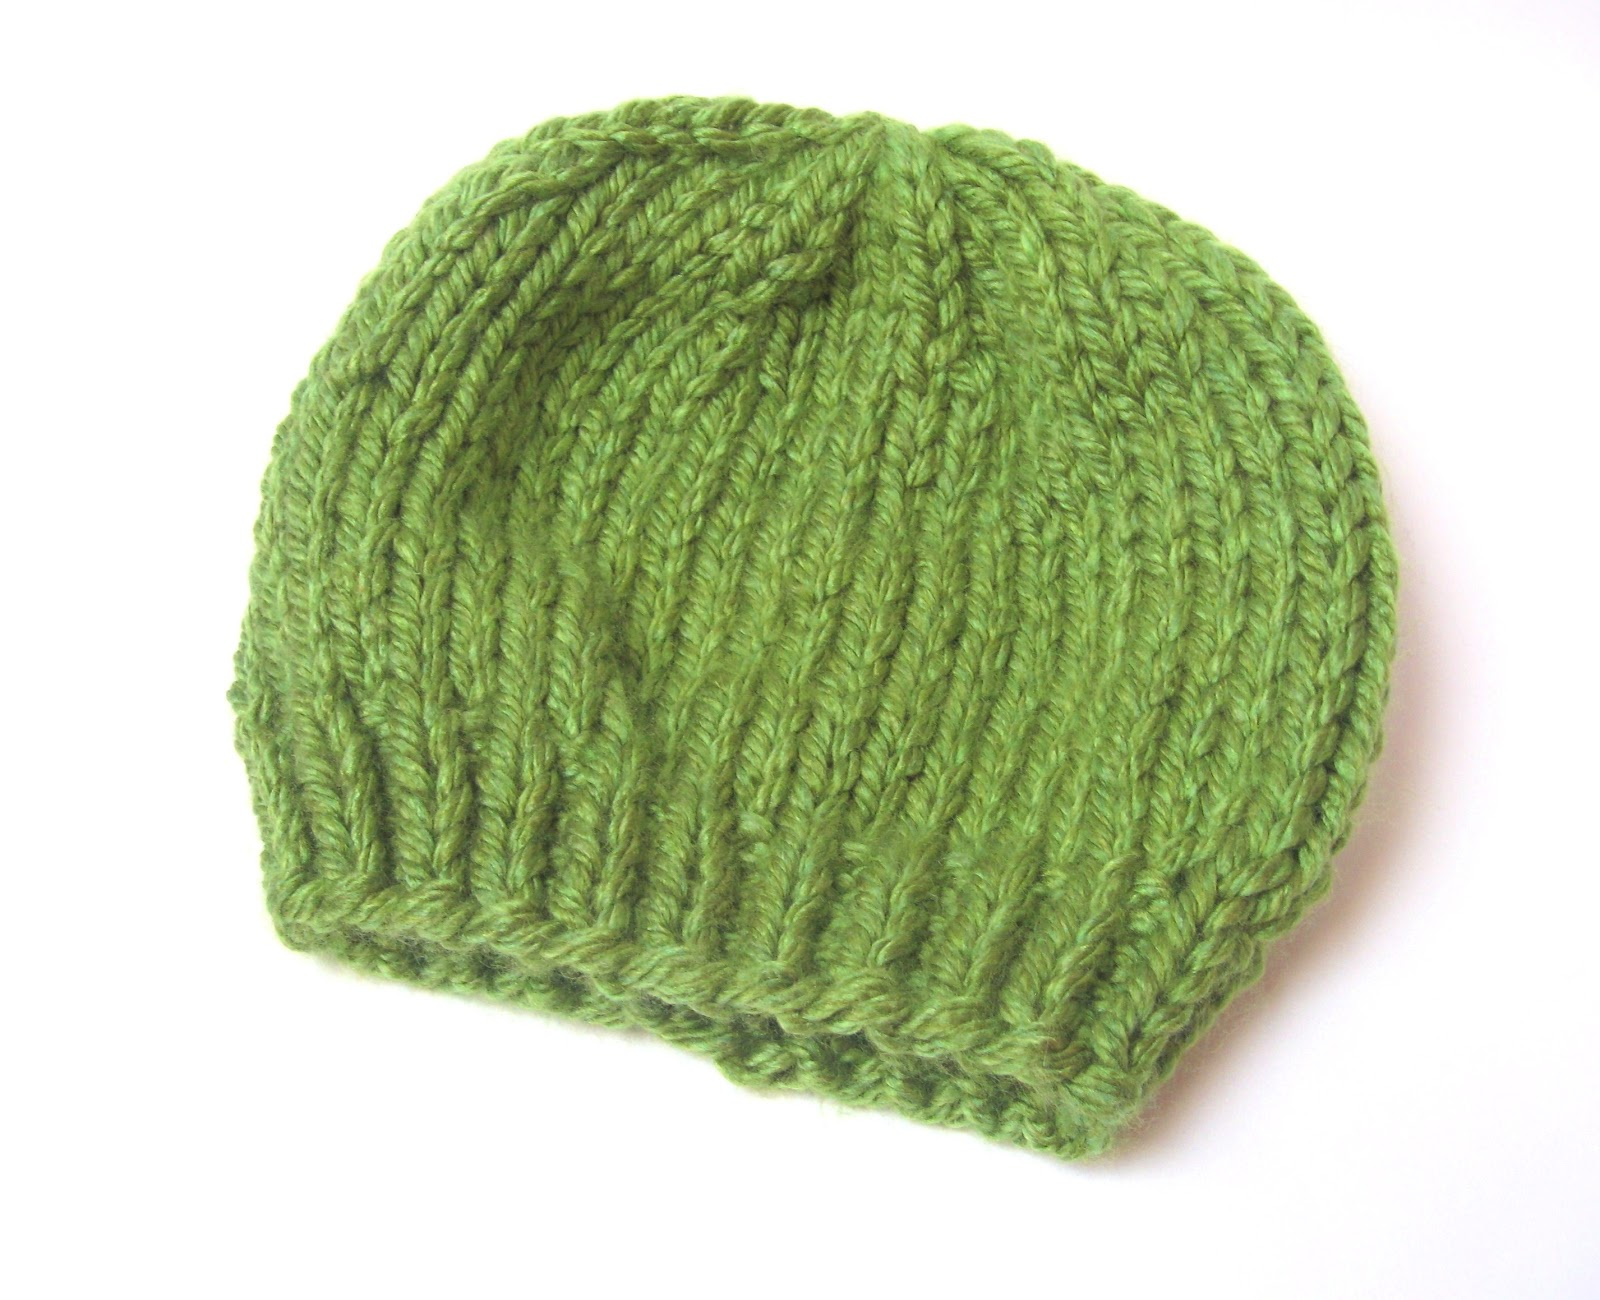 Simple Knit Hat Pattern Free : Free Easy Knit Hat Pattern Search Results Calendar 2015